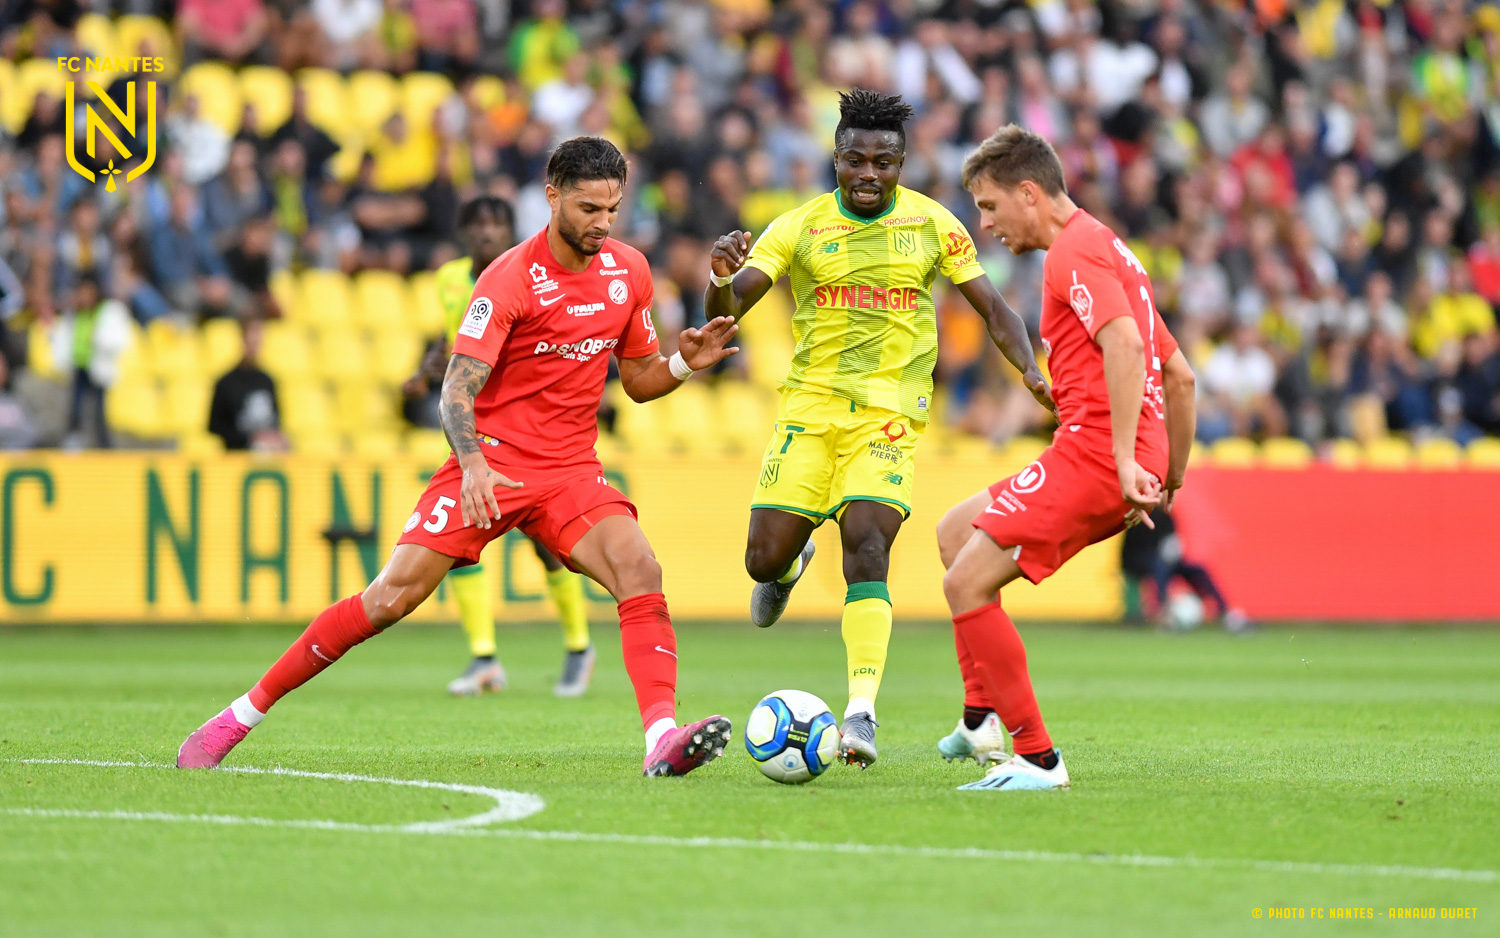 Gourcuff Hails Simon's Dribbling Skills, Good Showing In Nantes Win Vs Montpellier